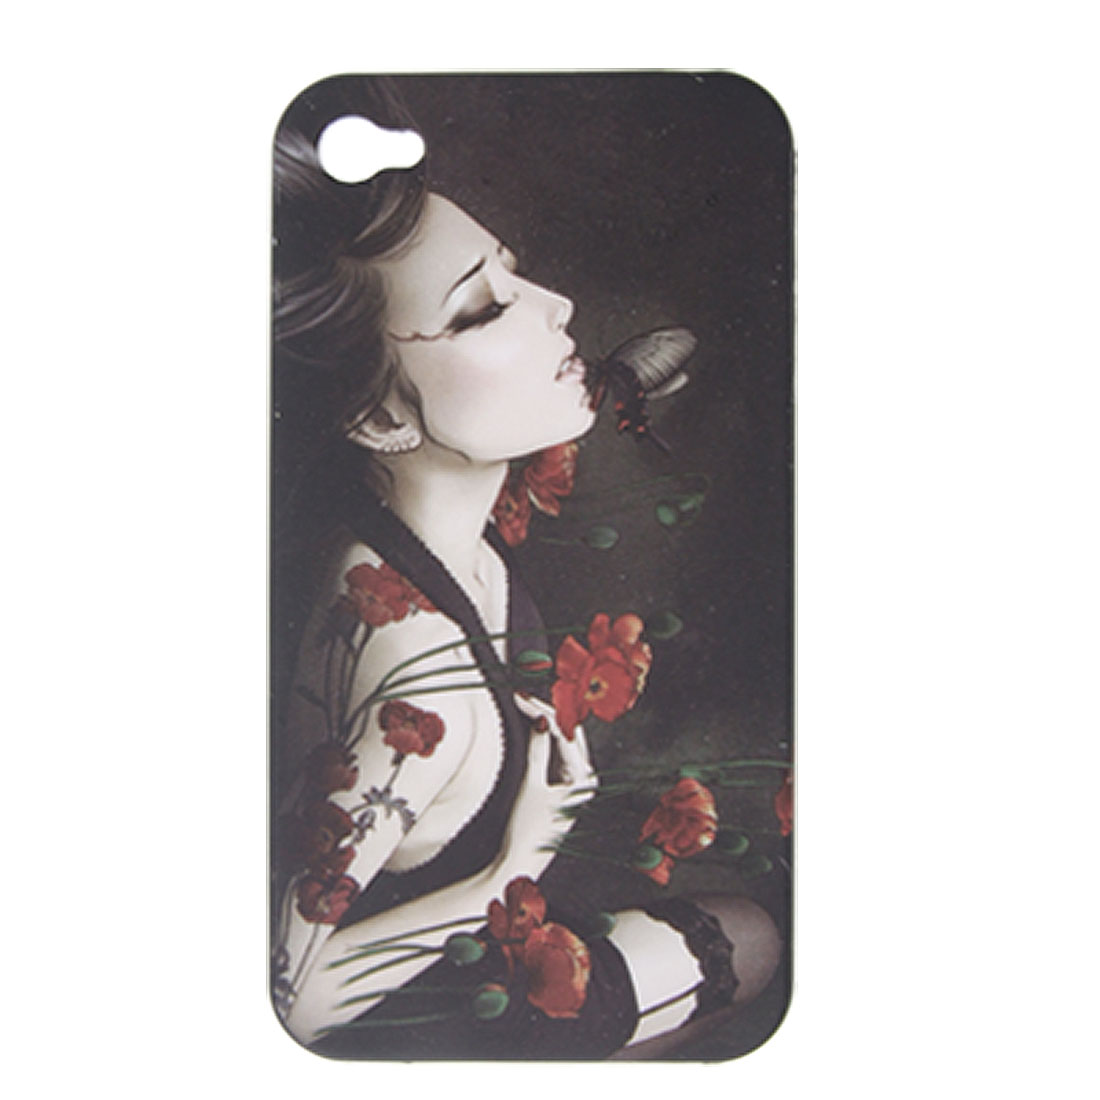 Sexy Lady Pattern Rubberized Plastic Case for iPhone 4 4G